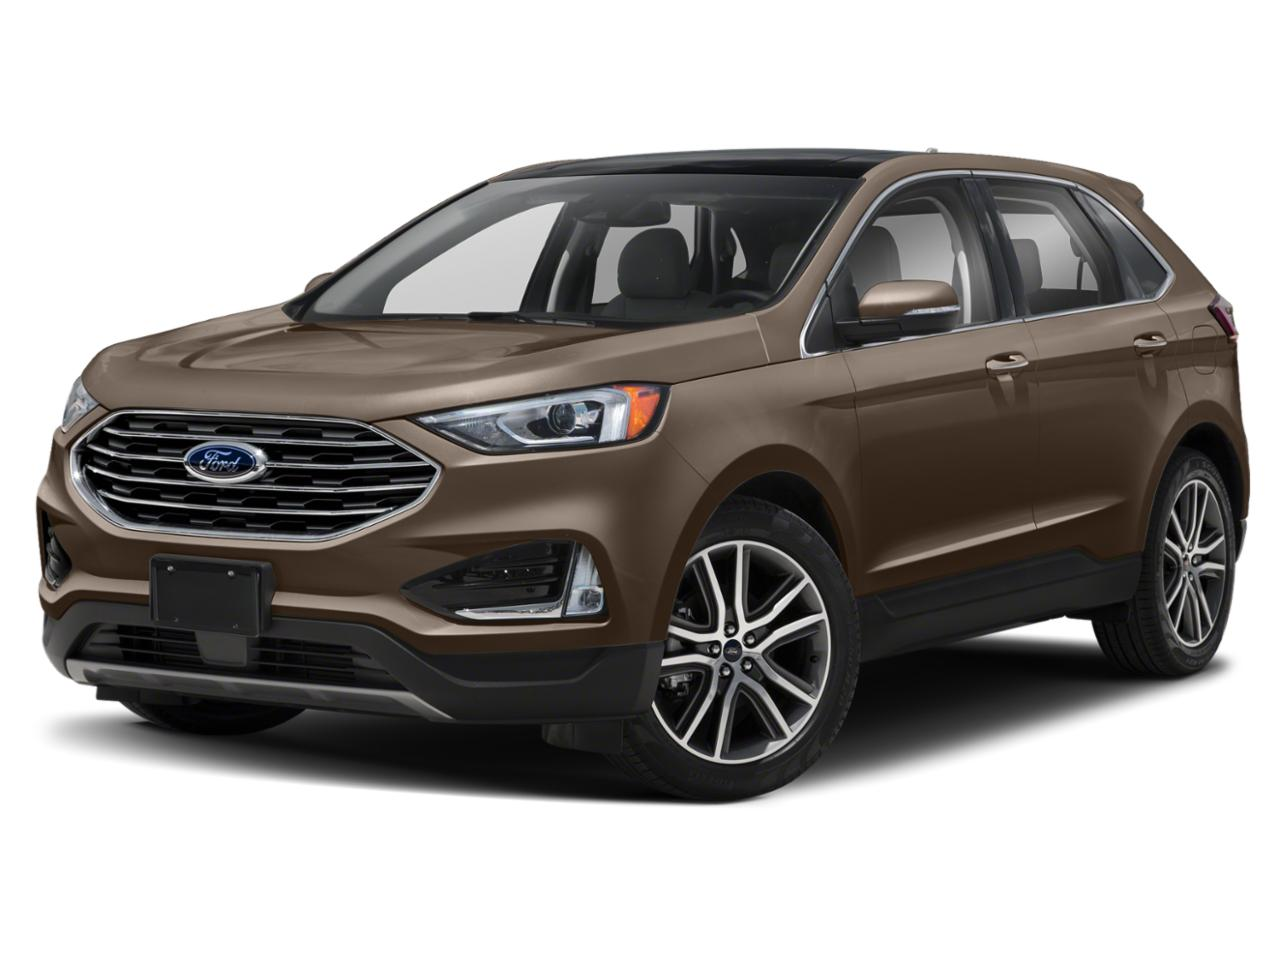 2019 Ford Edge Vehicle Photo in King George, VA 22485